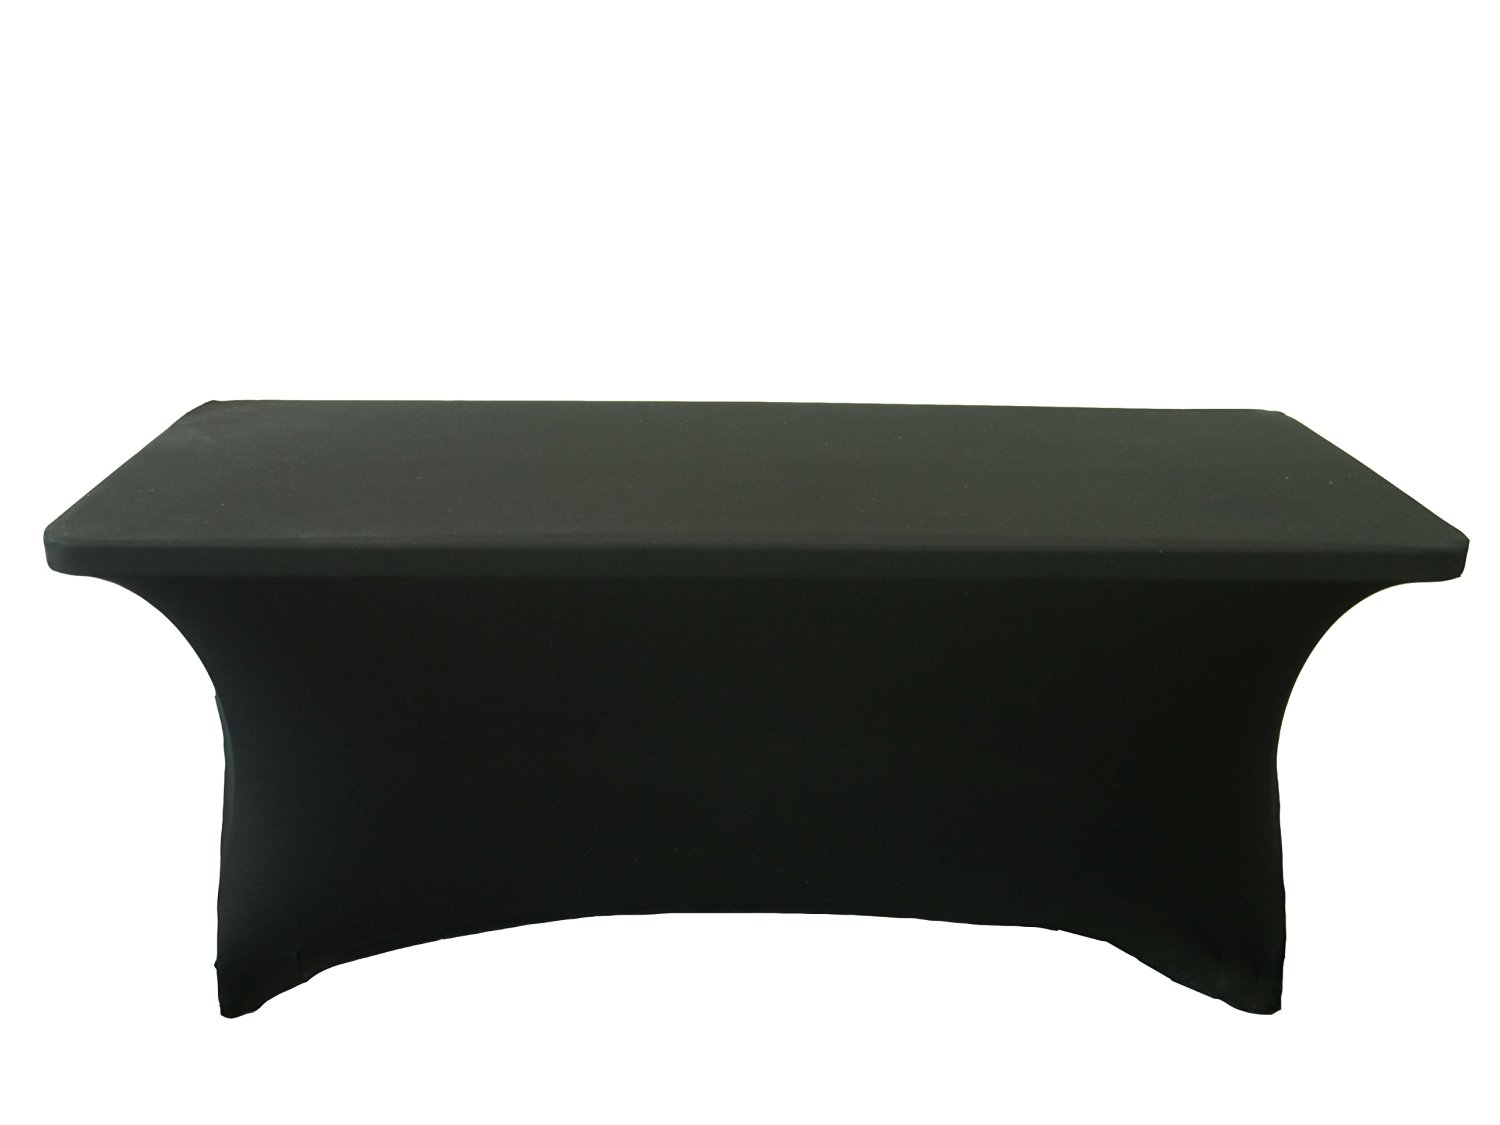 LA Linen Spandex Table Cloth for a 6-Feet Rectangular Table, 72 by 30 by 30-Inch, Black